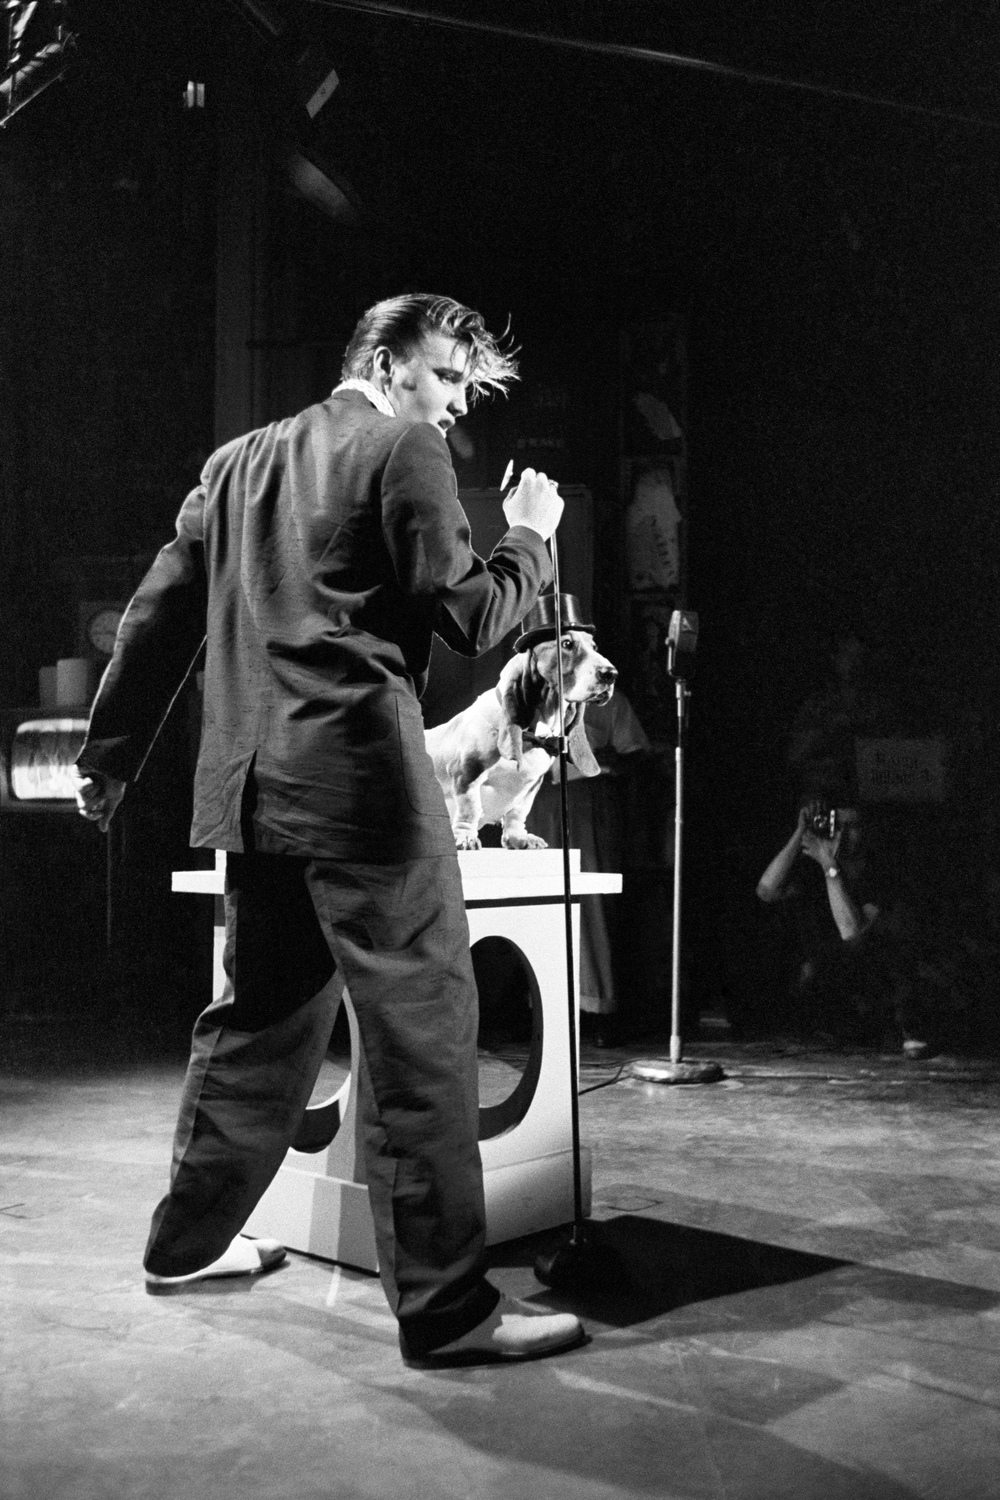 """It's showbiz time"": Elvis tries out ""Hound Dog"" in two rehearsals on <i>The Steve Allen Show</i>in New York City."